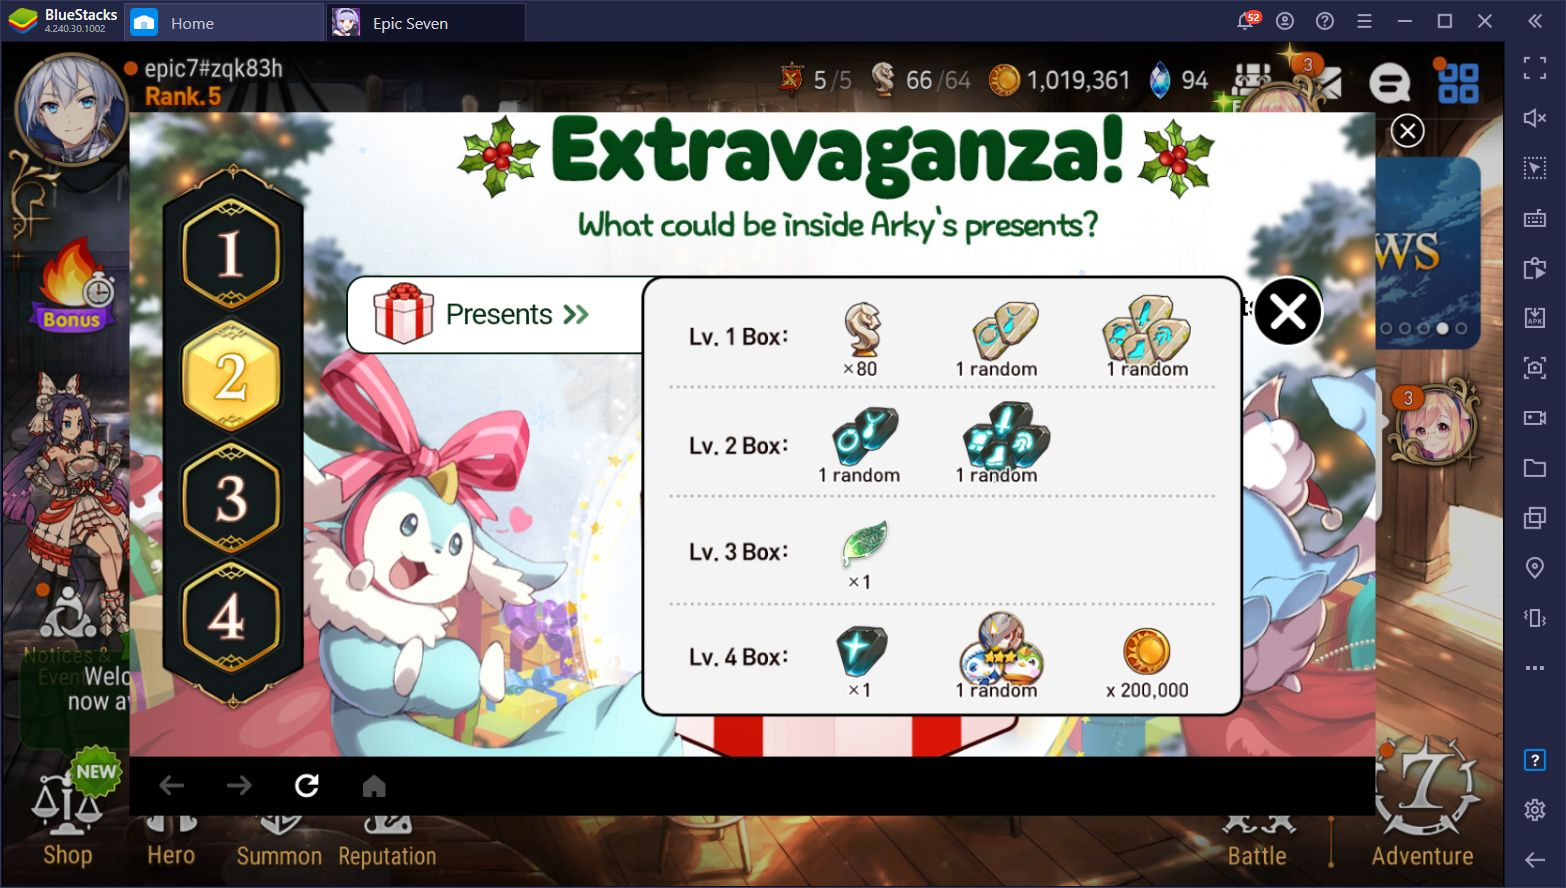 Epic Seven 'Present Extravaganza' Event Gives Players Unique Rewards for Contributing